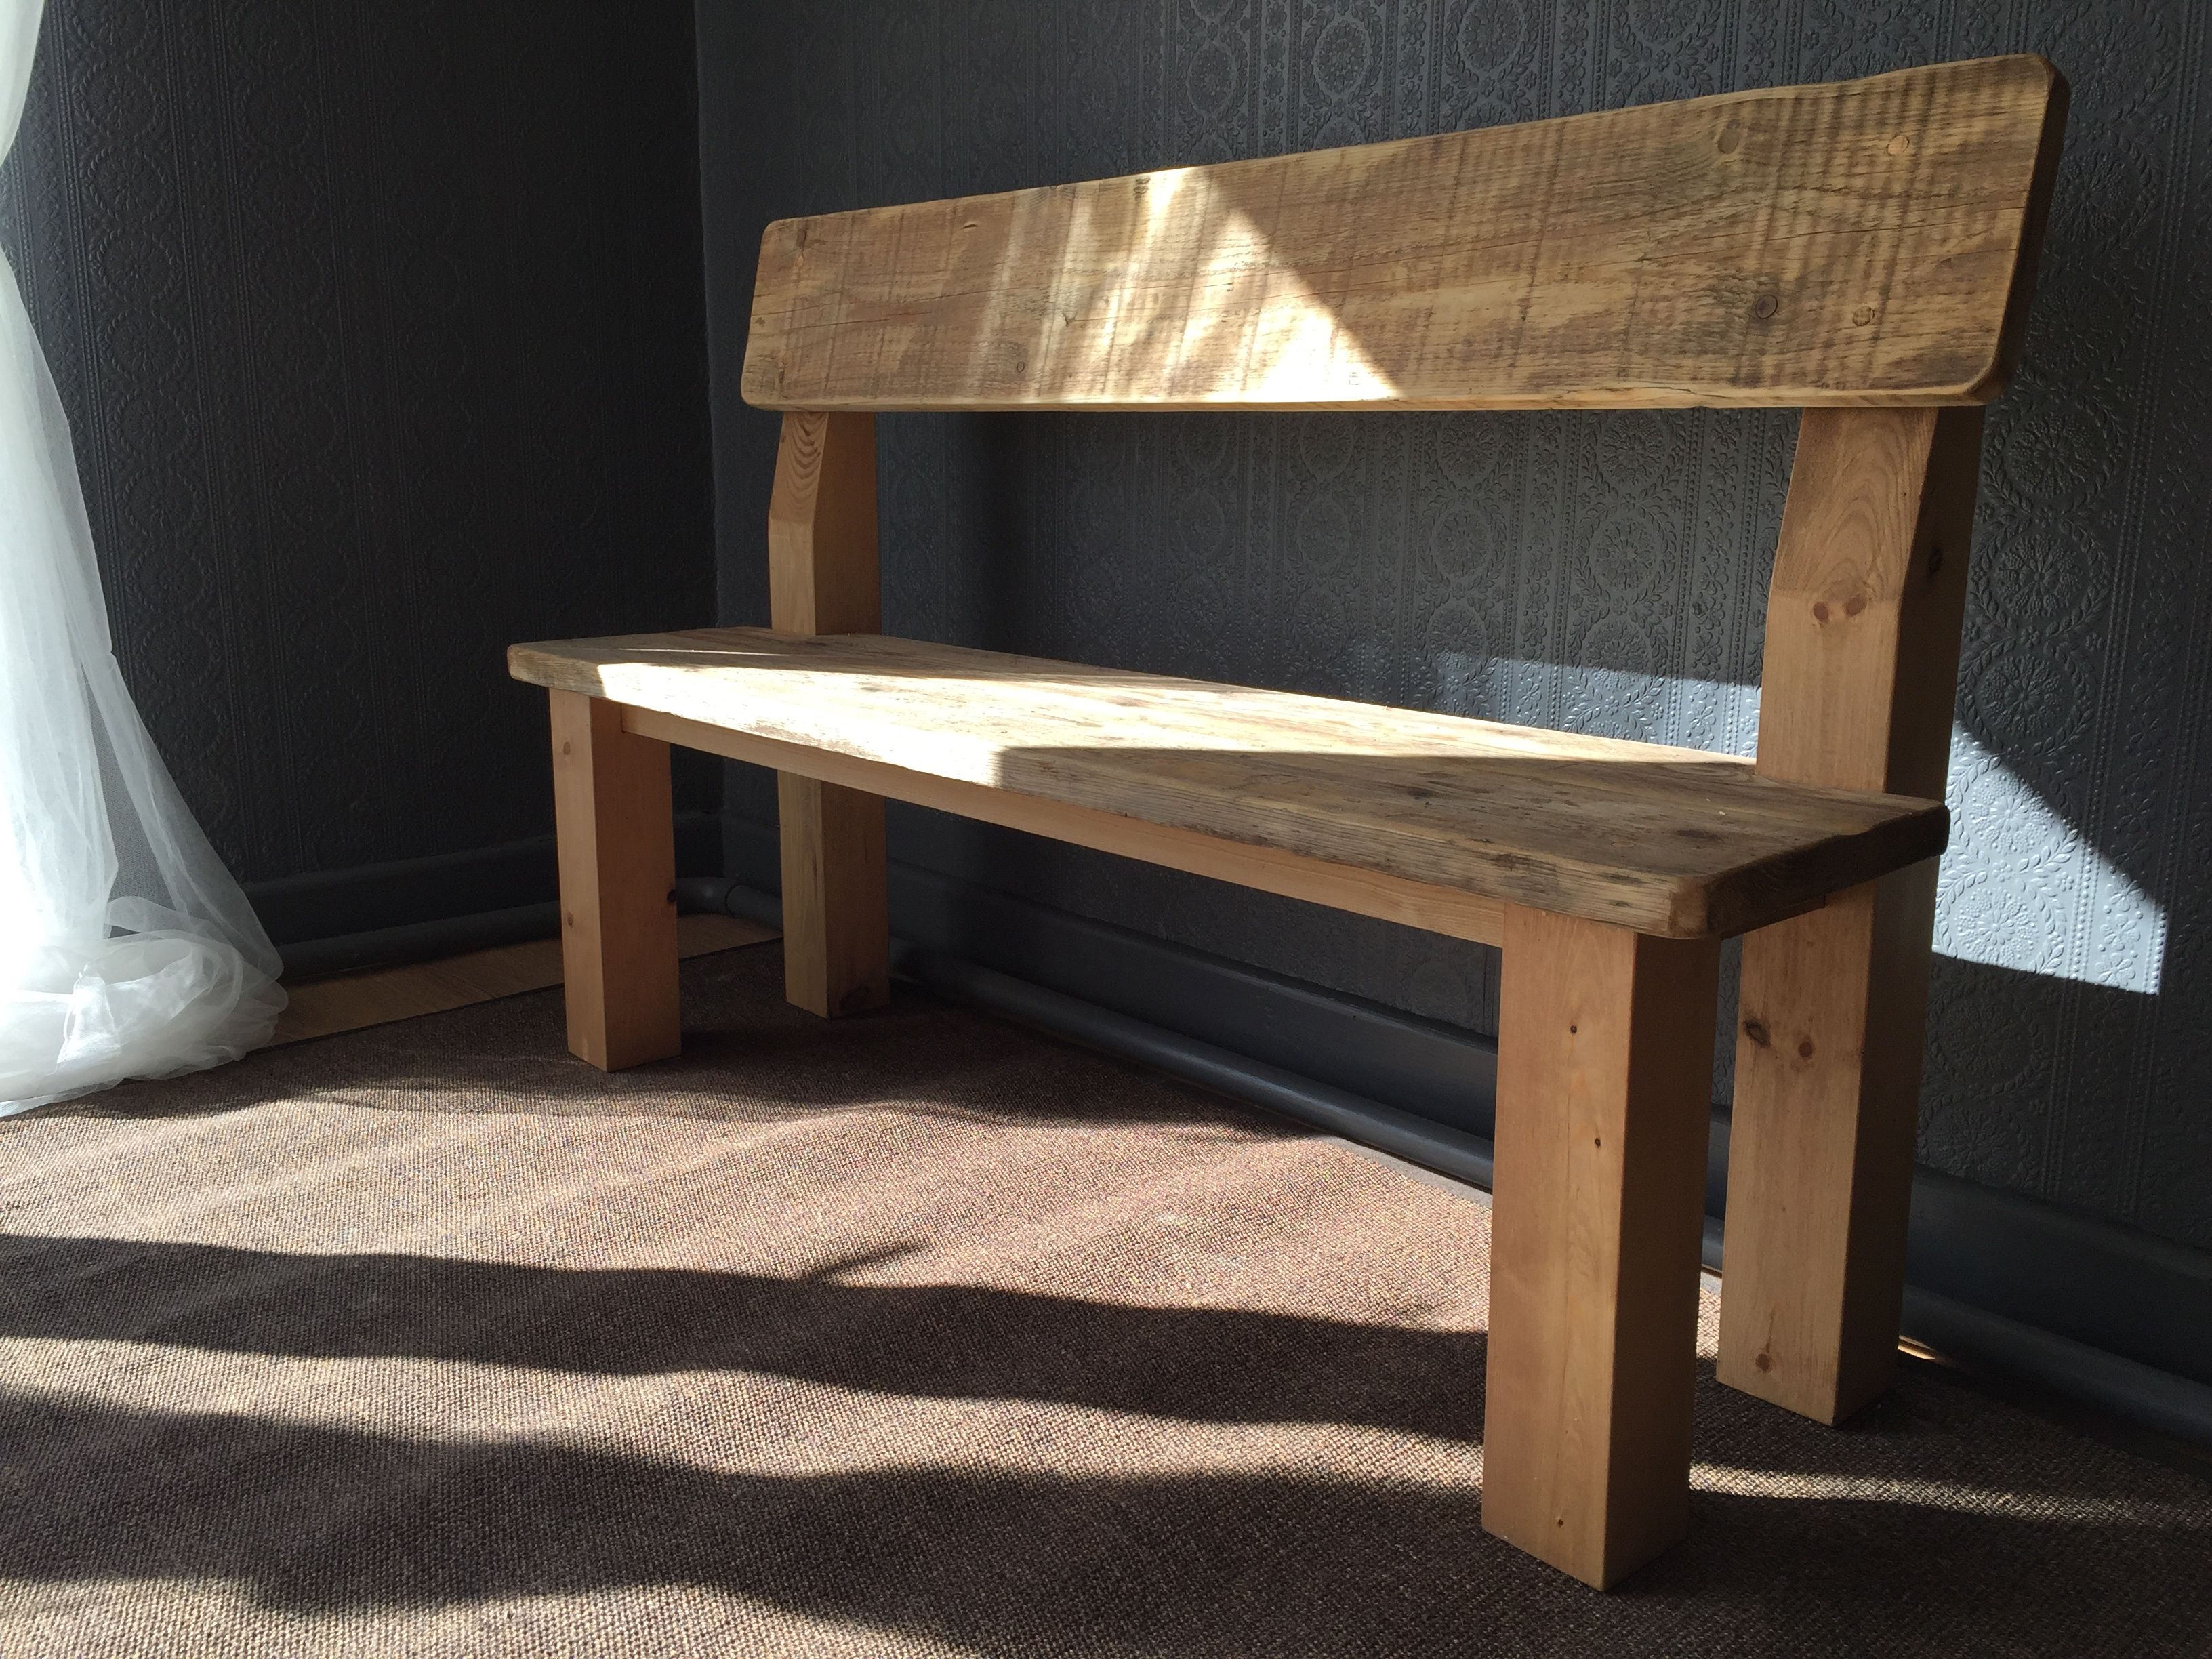 dining bench with back rest Kitchen table bench, Dining